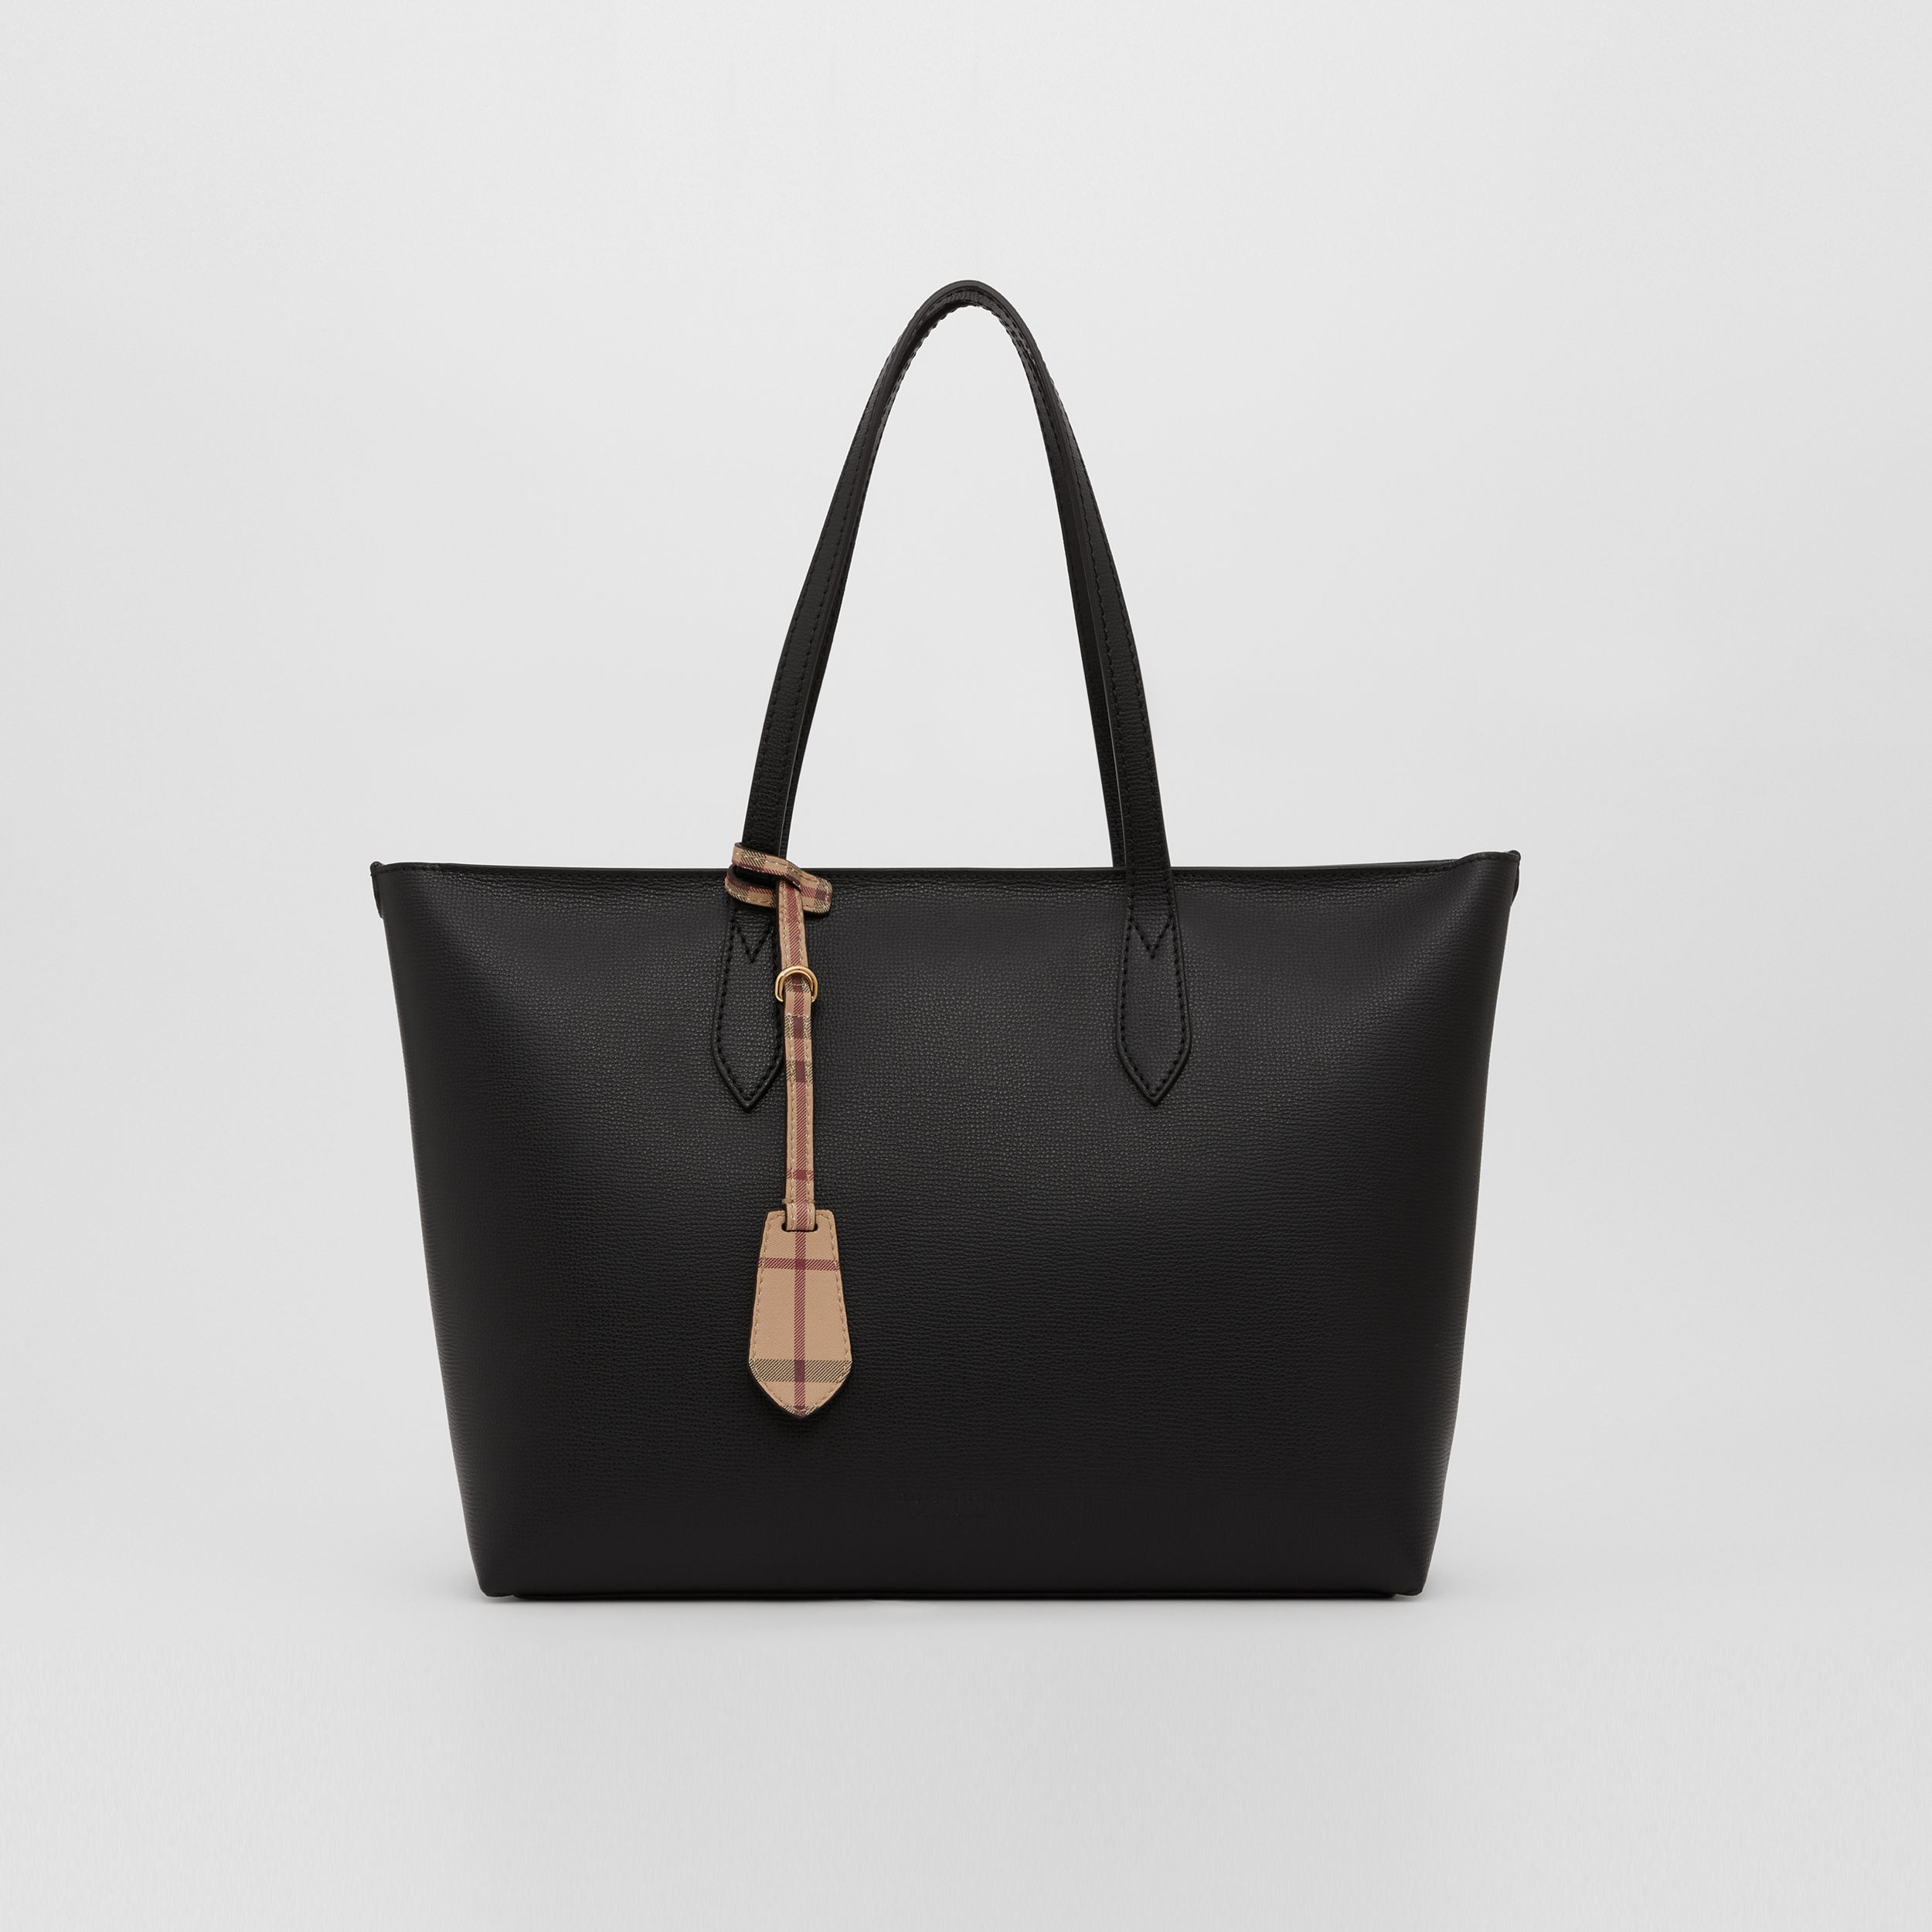 Medium Coated Leather Tote in Black - Women | Burberry - 1